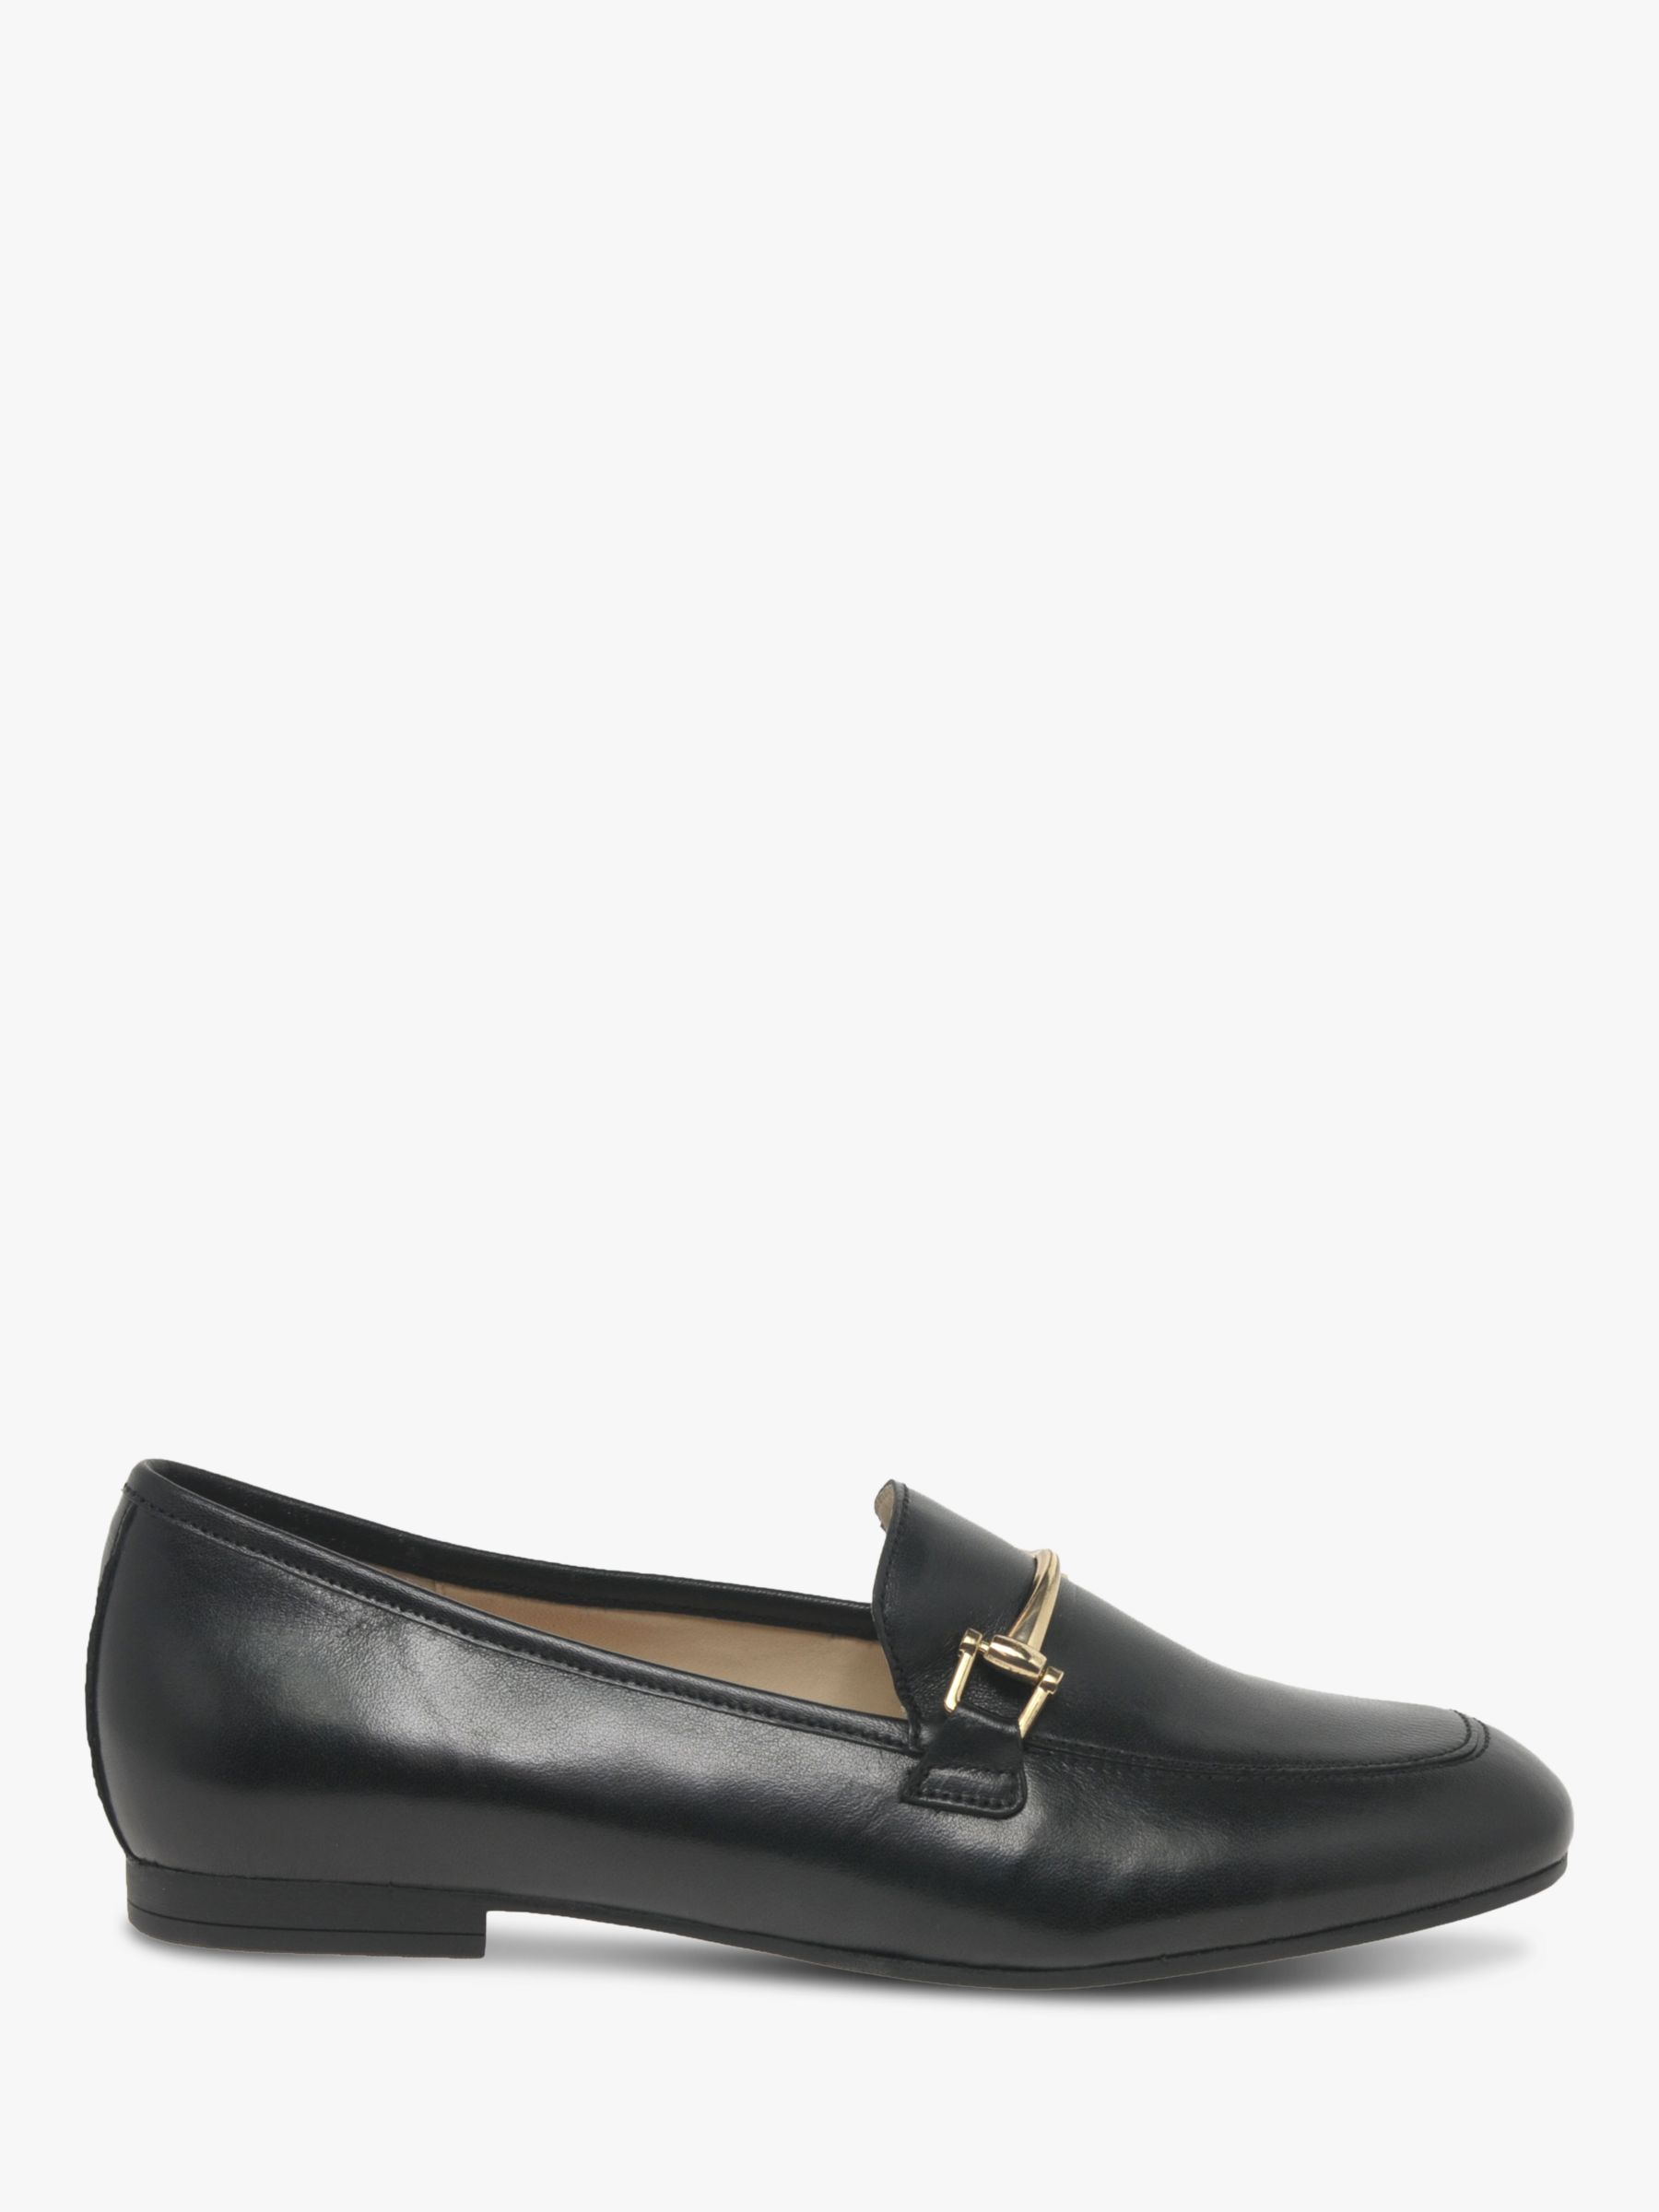 buy online 24a28 e72f9 Gabor Serin Gold Trim Loafers, Black